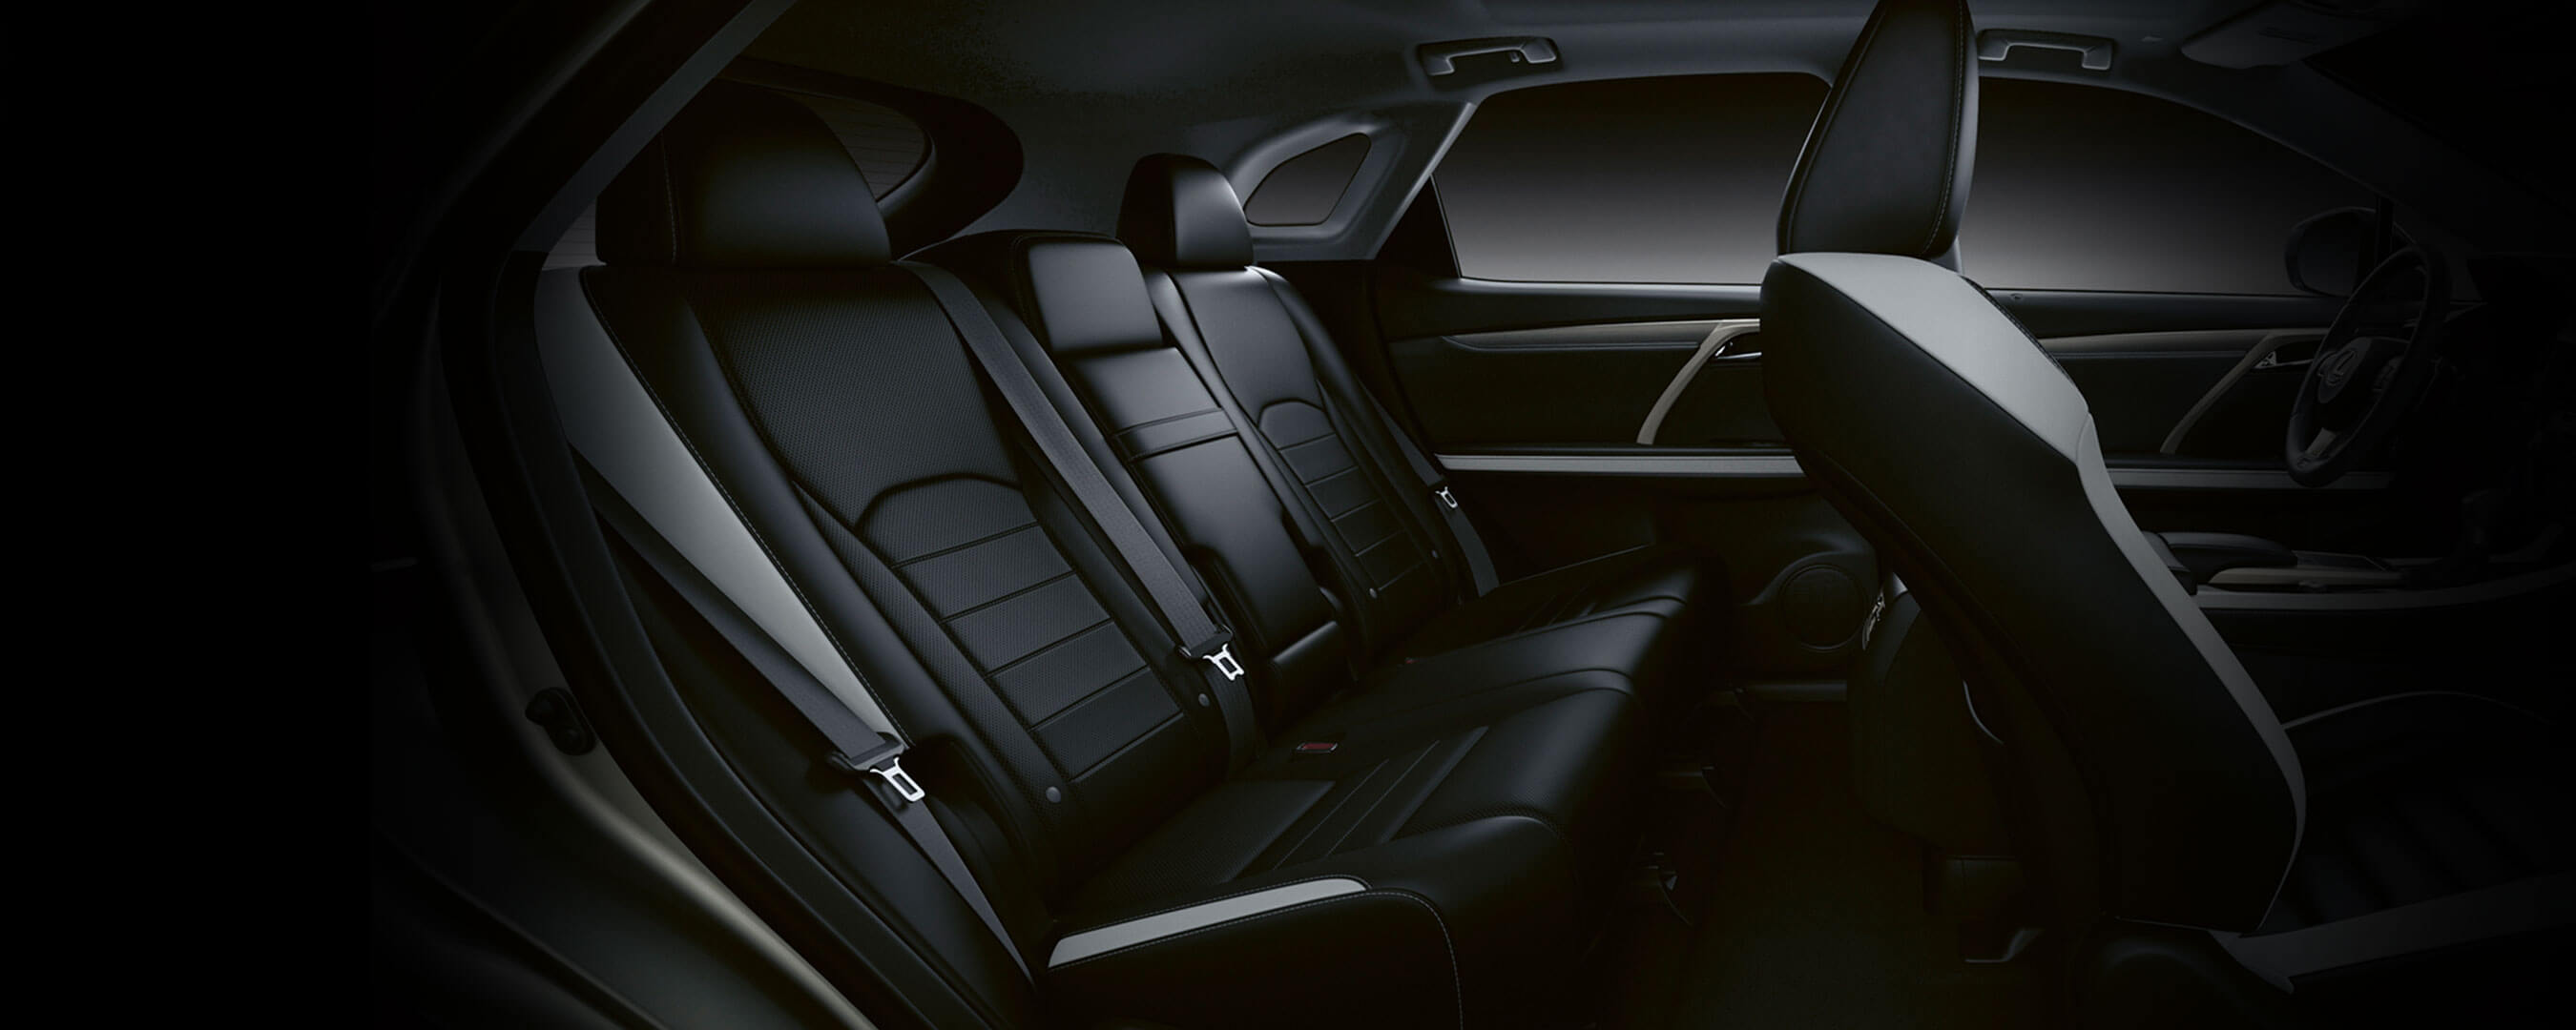 2019 lexus rx experience interior back